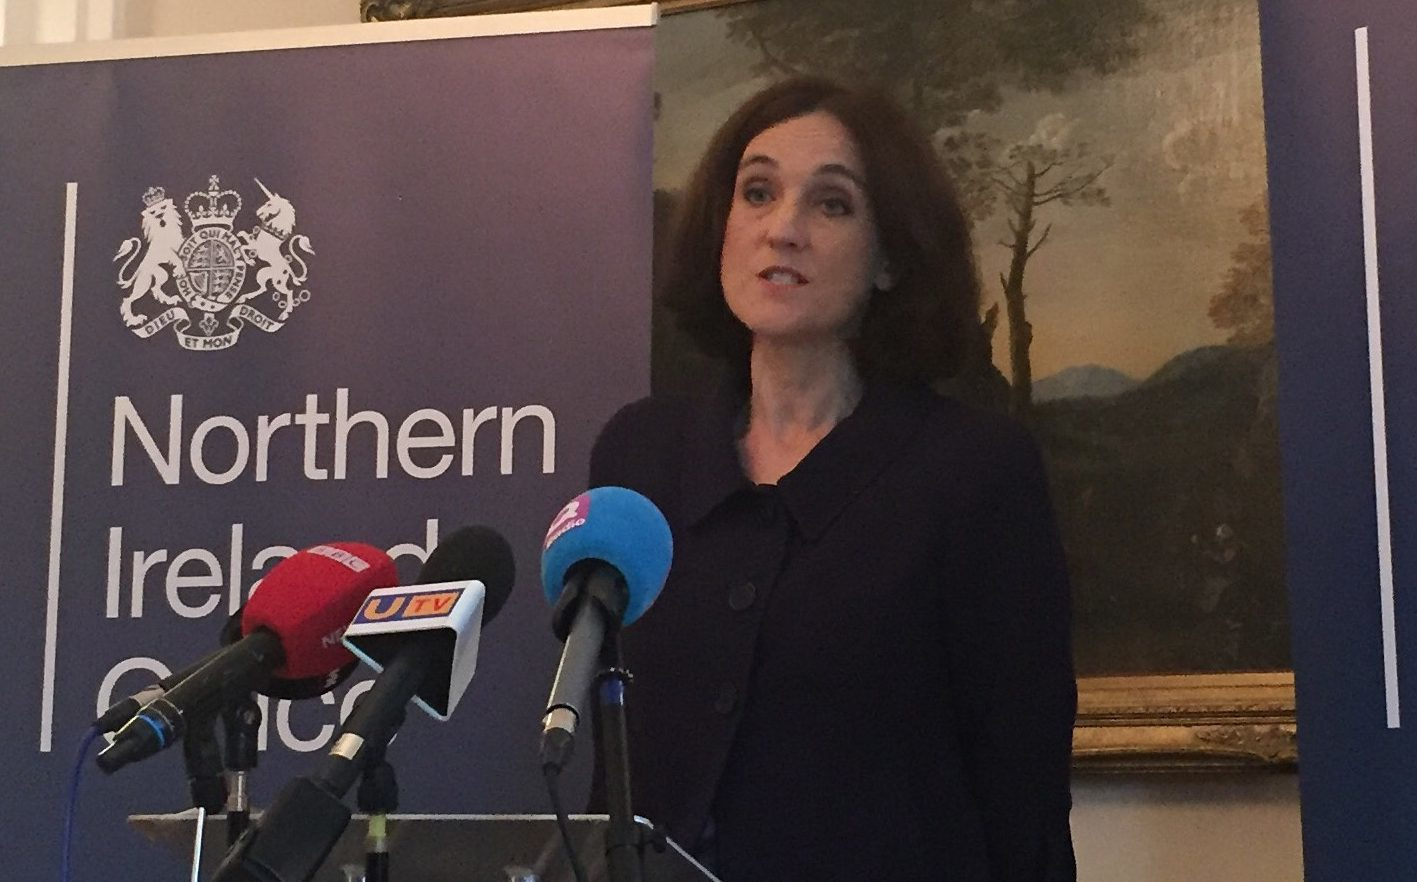 Northern Ireland Secretary Theresa Villiers insisted that Scotland and Northern Ireland will not be able to attain special EU status in the wake of Brexit.